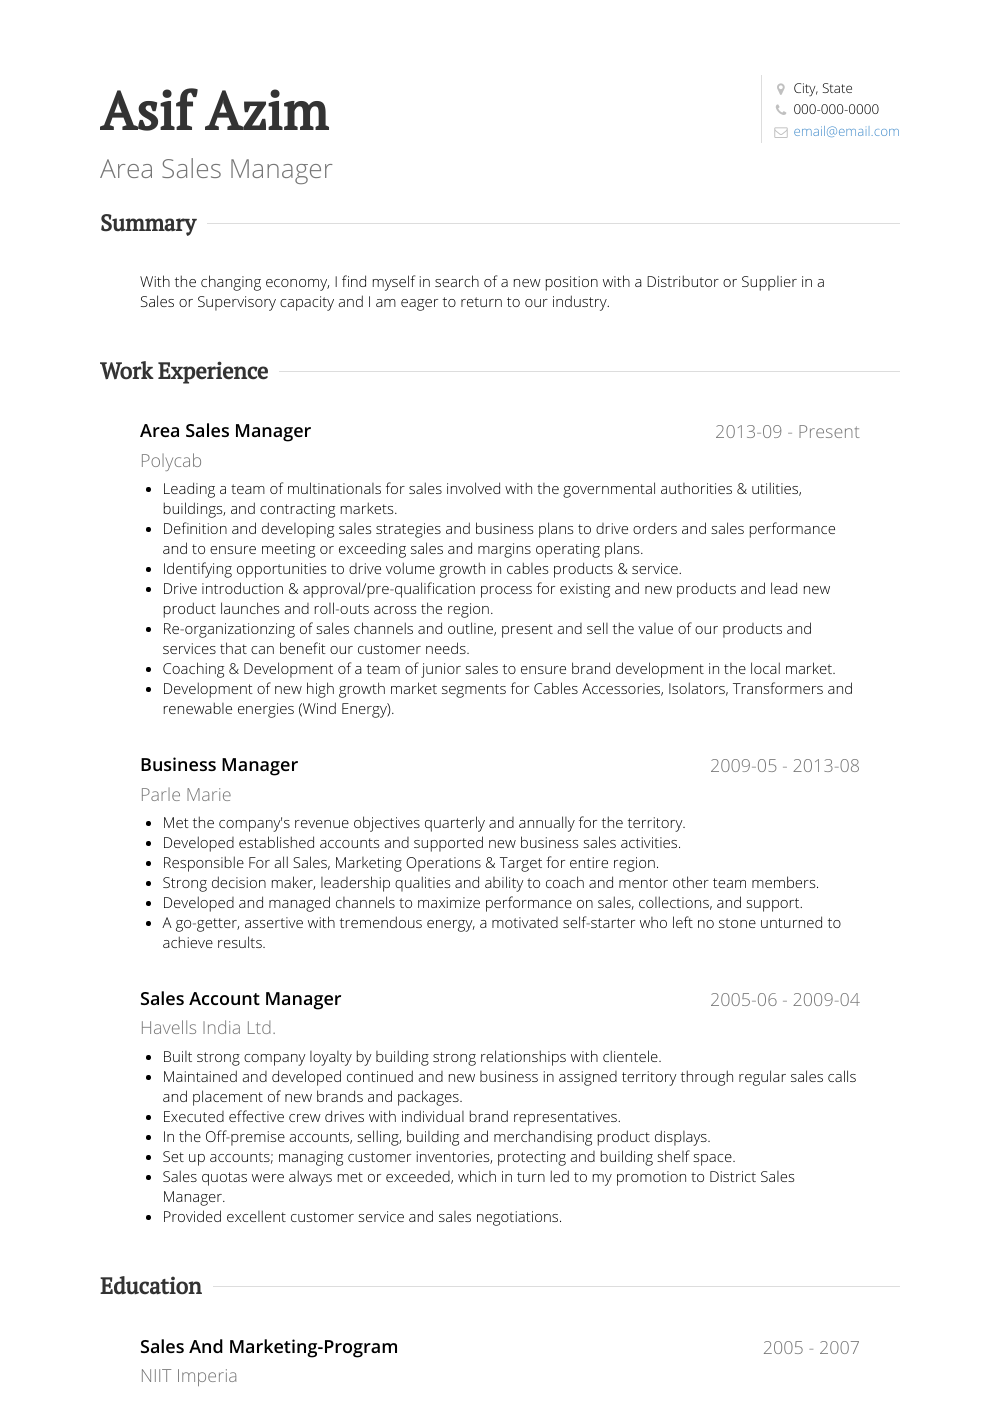 Area Sales Manager Resume Sample and Template